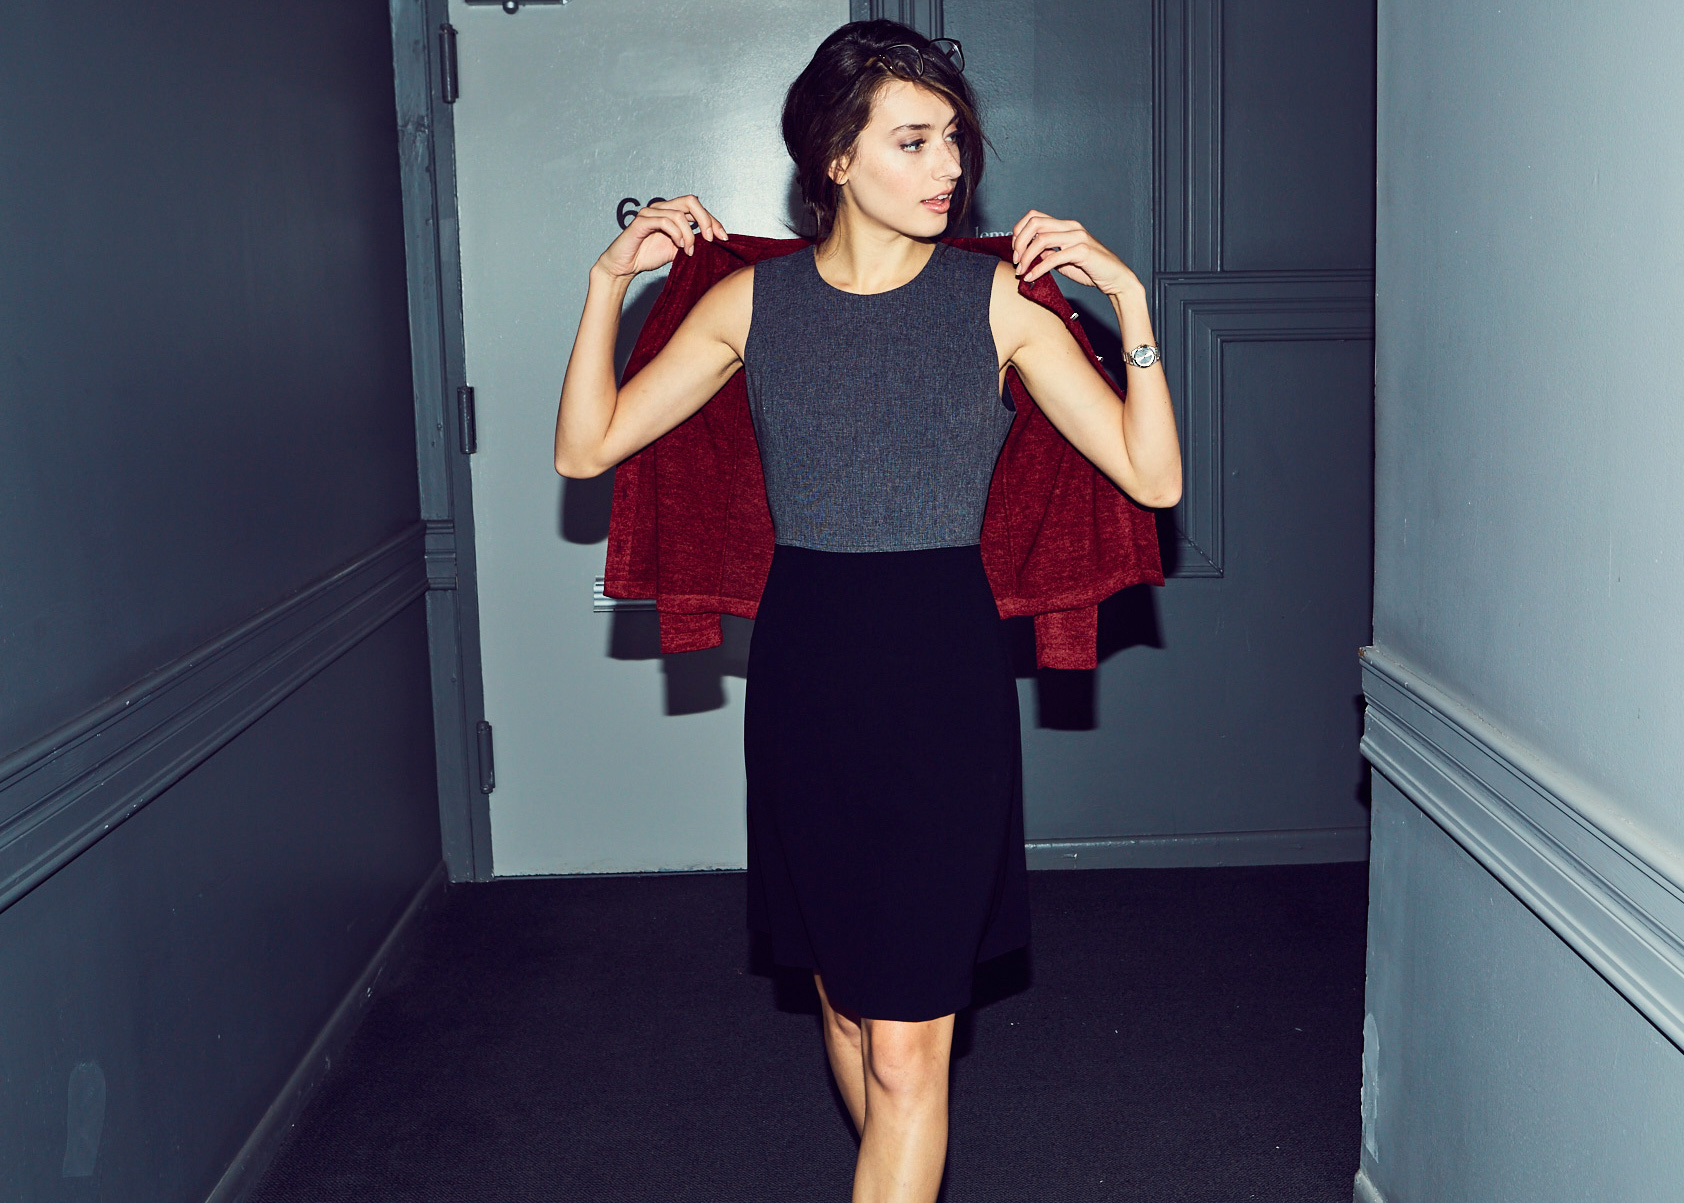 Of Mercer | Grey and Black Colorblock Work Dress